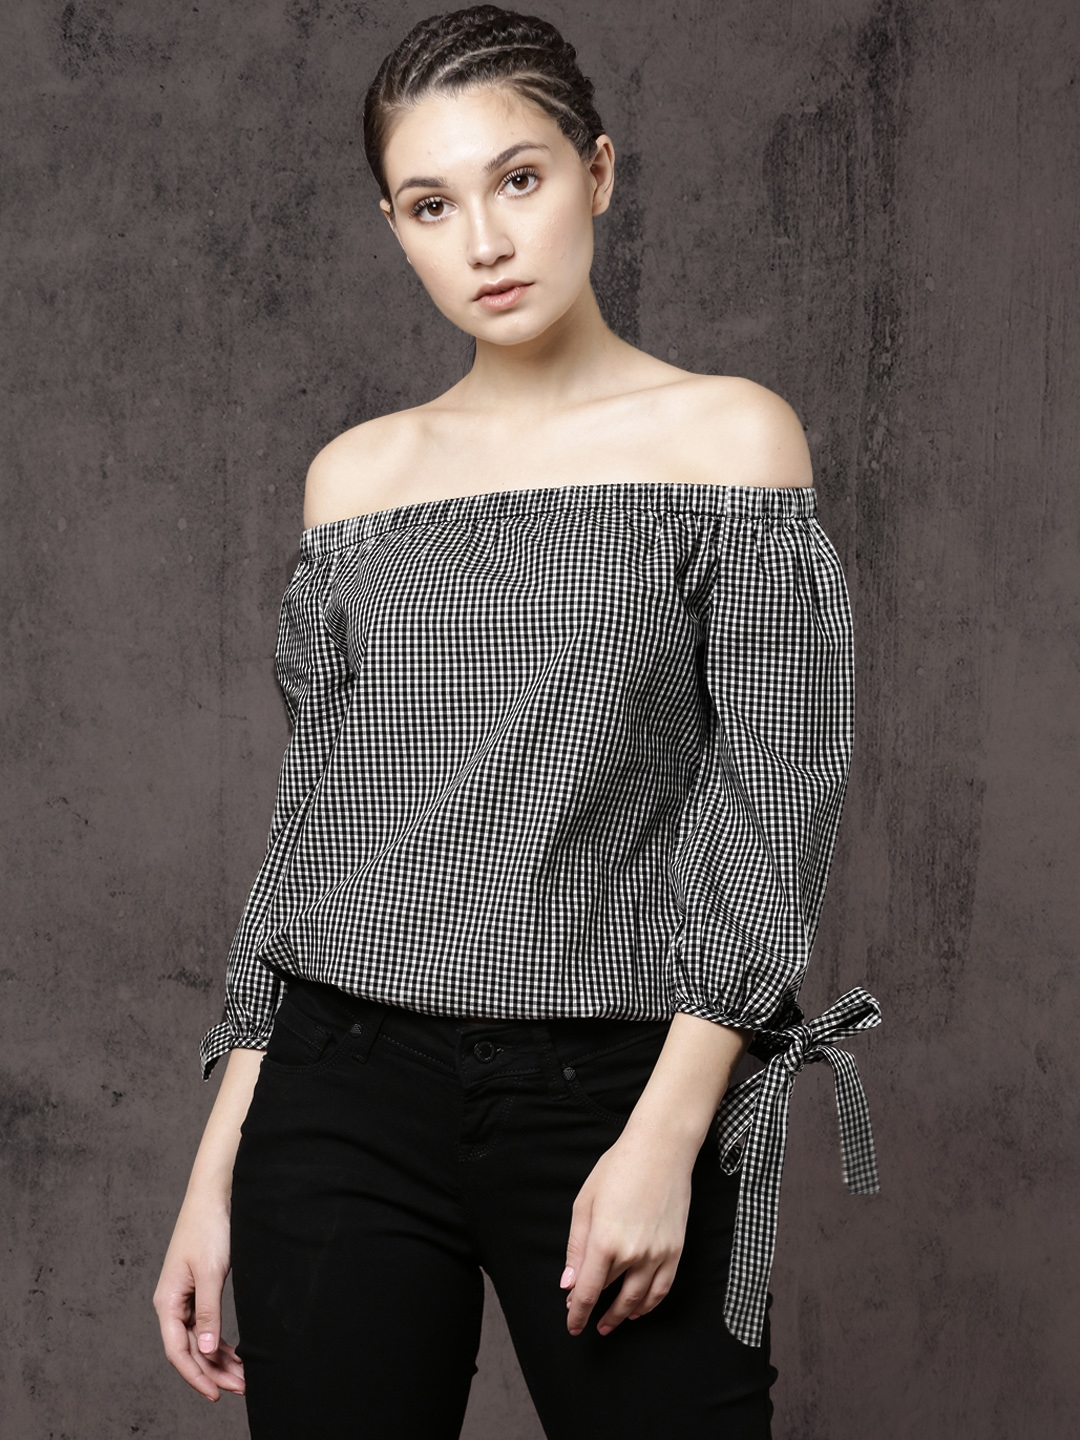 919275fd82ed66 Buy Roadster Time Travlr Women Black Checked Bardot Top - Tops for ...